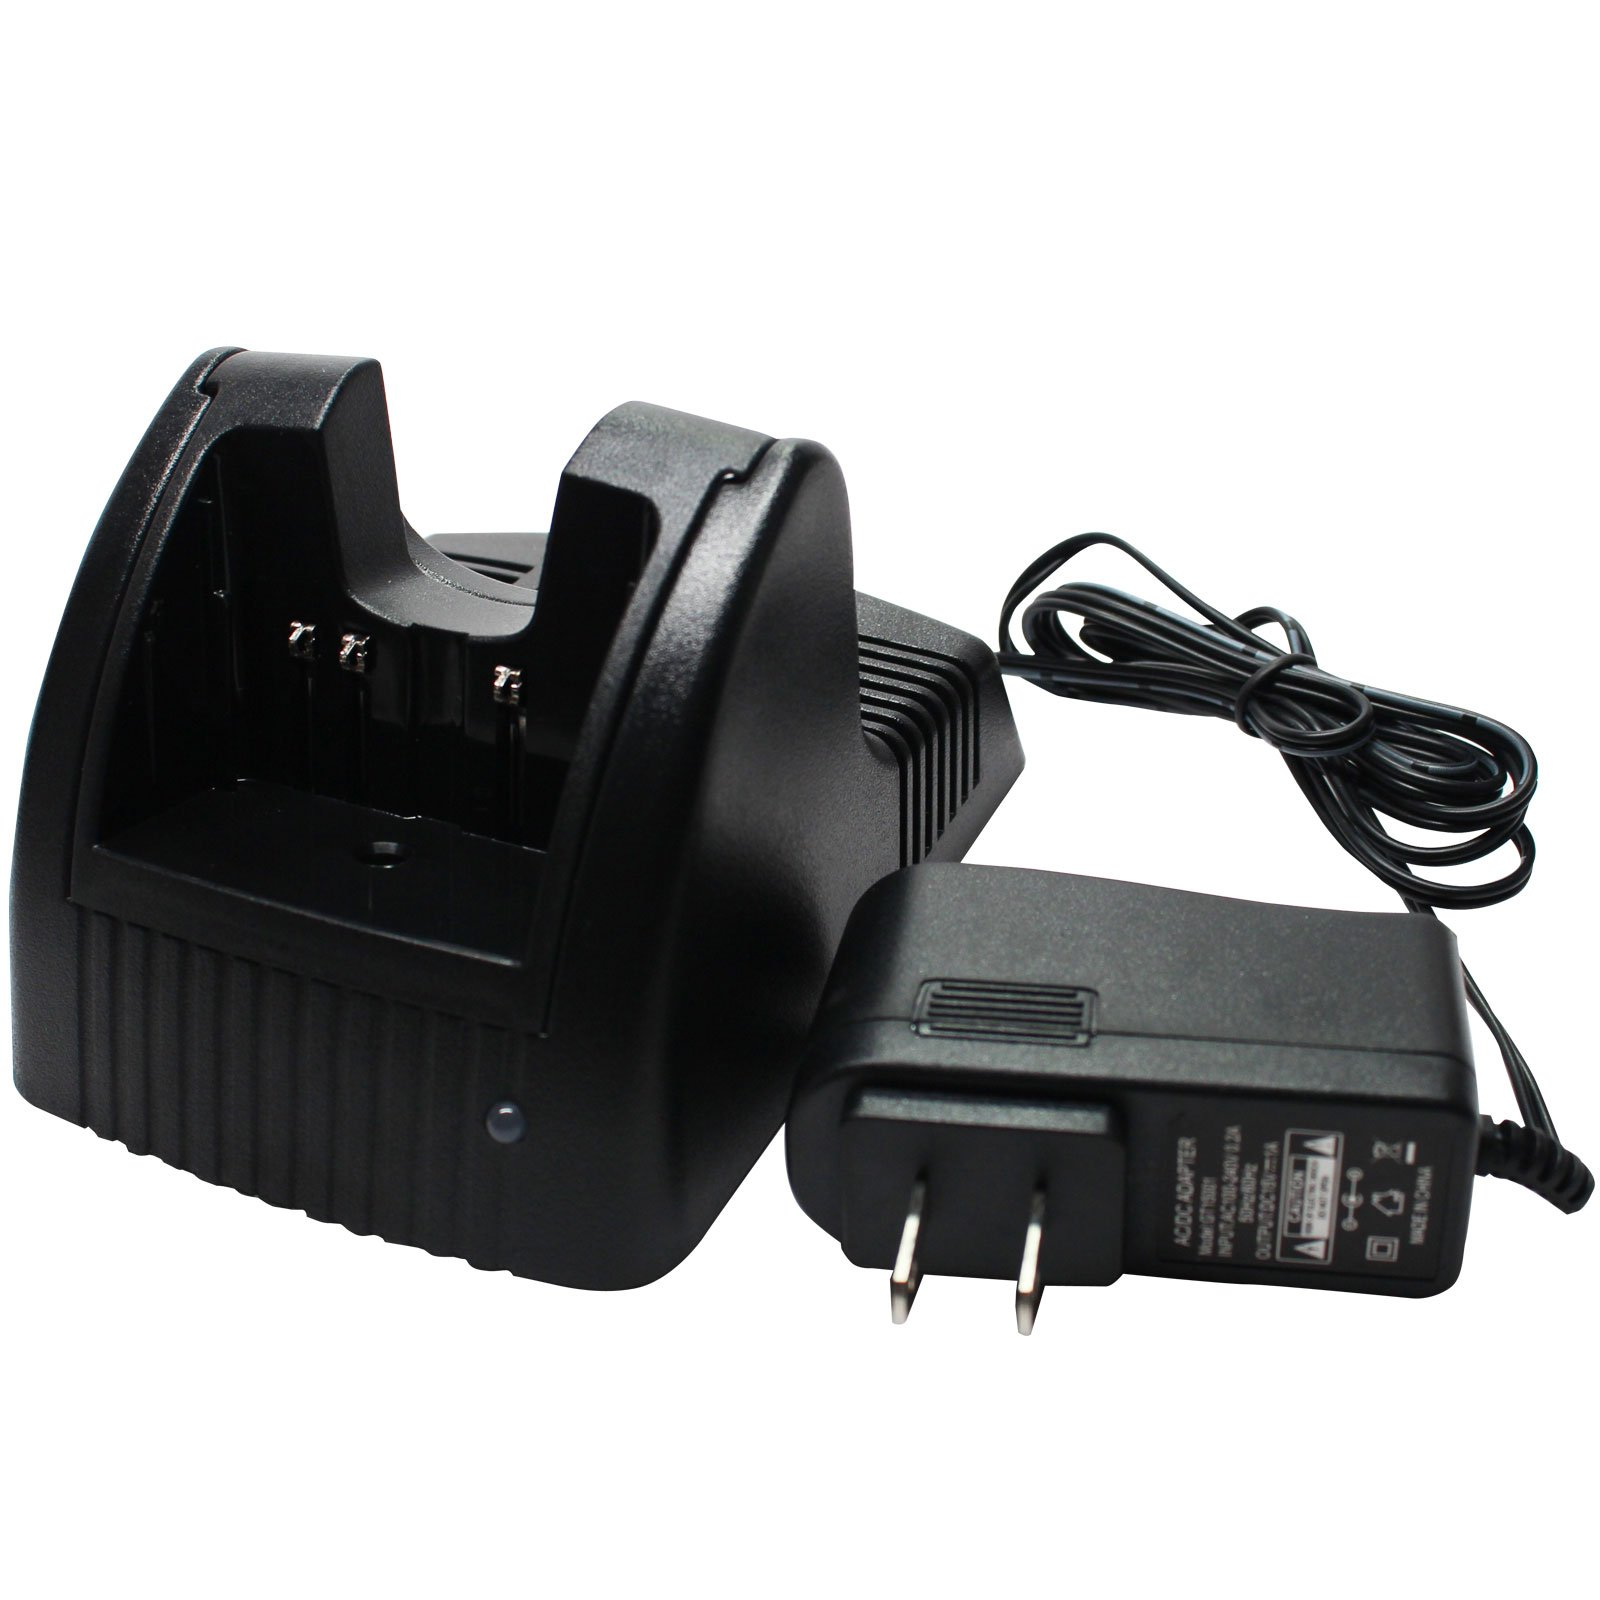 Yaesu FT-60R Charger - Replacement for Yaesu FNB-83 Two-Way Radio Chargers (100-240V) - Also Replaces FT-270R, VX-170, FT-250R, VX-150, FT-277R, VX-420, VX-400, VX-210, FT-250E, VX-180, VX-177, VX-160, VX-127, VX-427, VX-800, FT-60E, Vertex VX-800